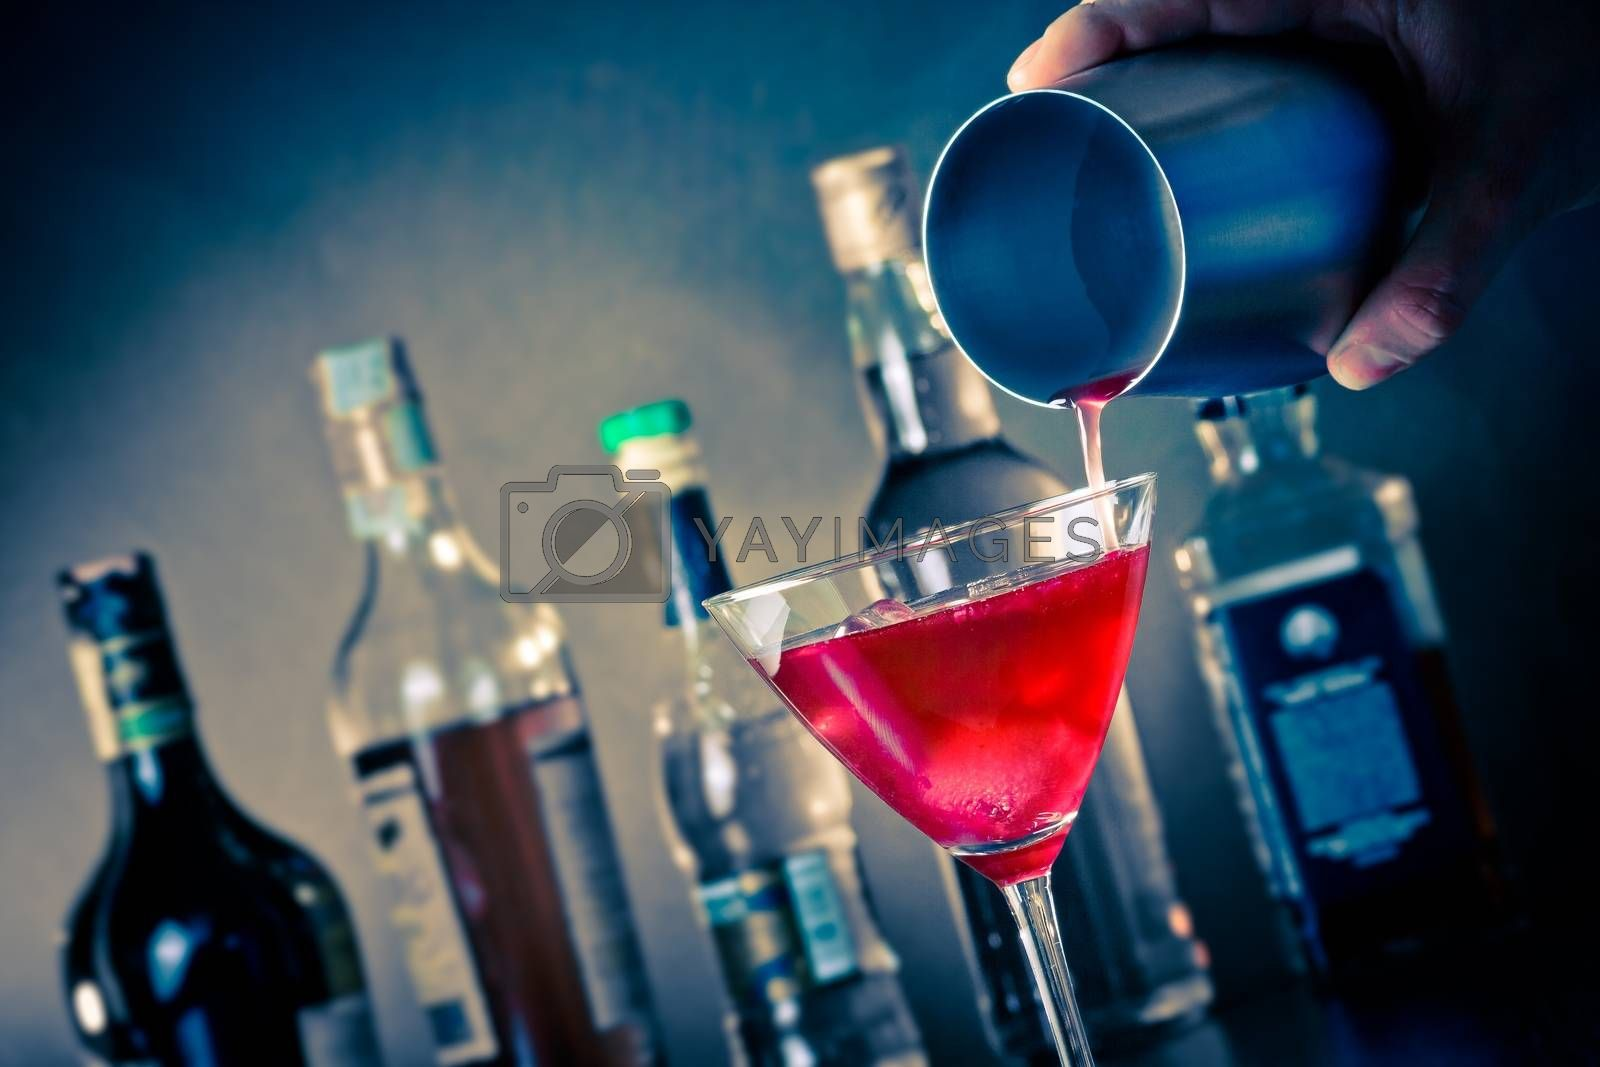 Barman pouring a red cocktail into a glass with ice by donfiore